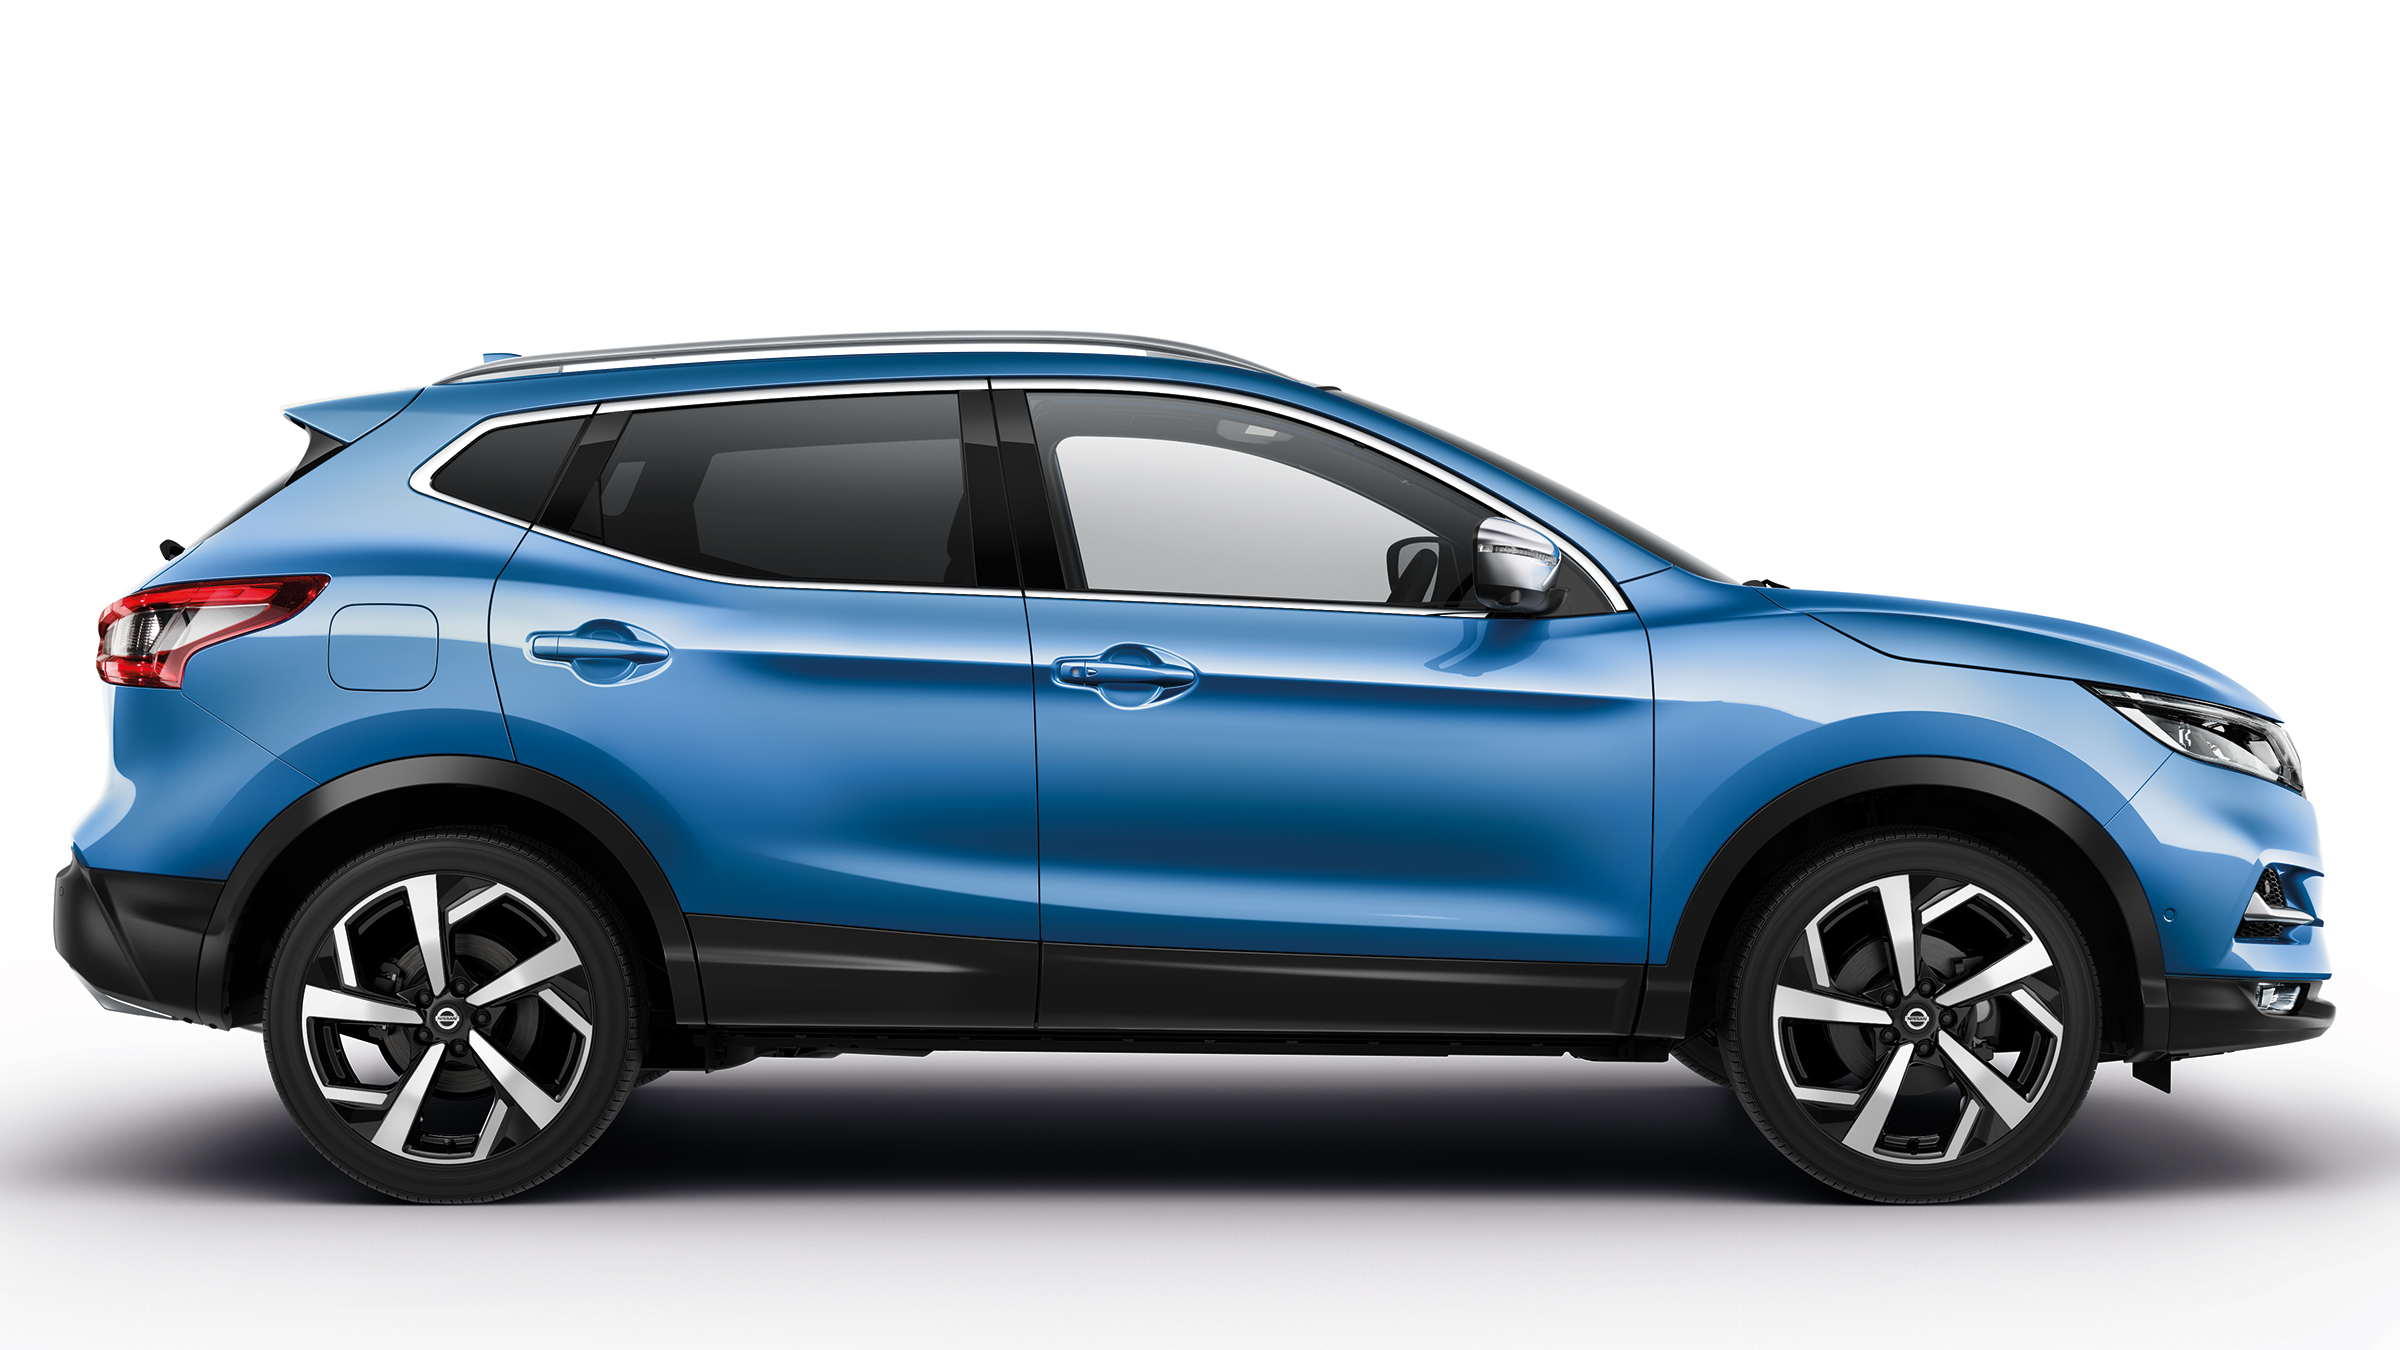 2020 Nissan Qashqai blue color side wide view 4k ultra uhd 2400x1350